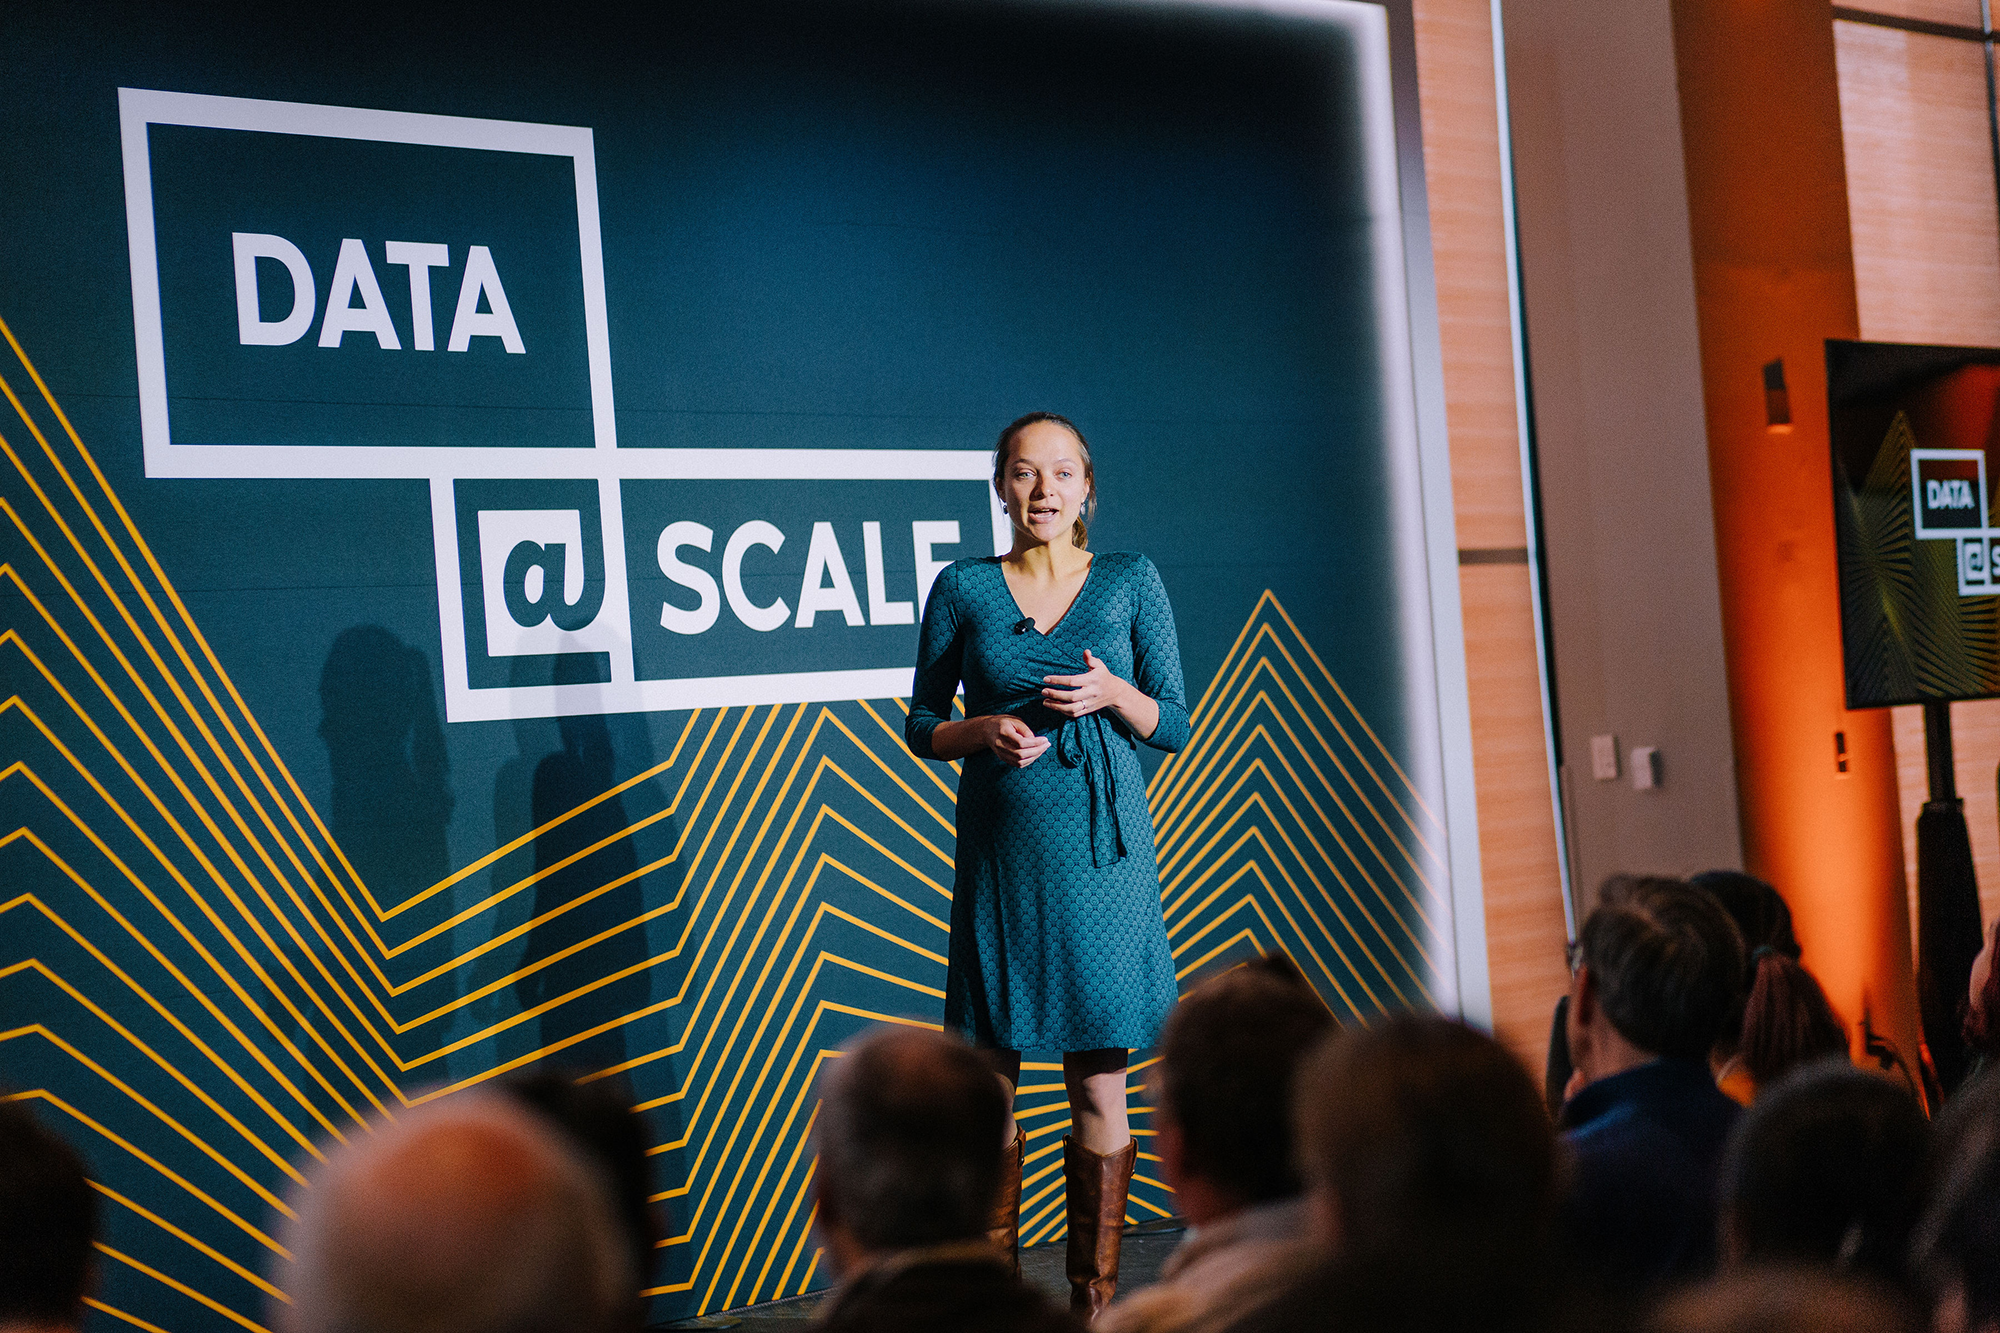 Data @Scale, an invitation-only technical conference for engineers working on large-scale storage systems and analytics. Facebook's Seth Silverman, engineering manager, and Laney Zamore, software engineer, kicked things off in downtown Boston.